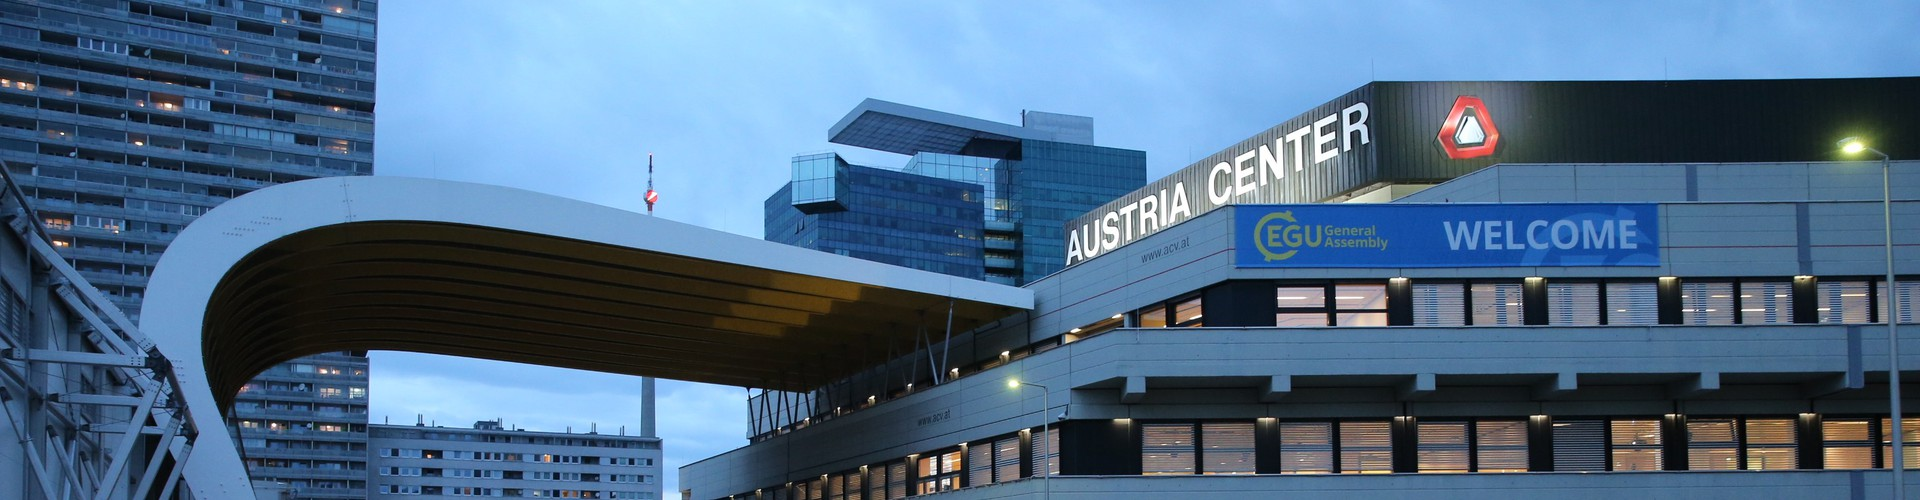 The Austria Center Vienna, site of the  European Geosciences Union's annual General Assembly